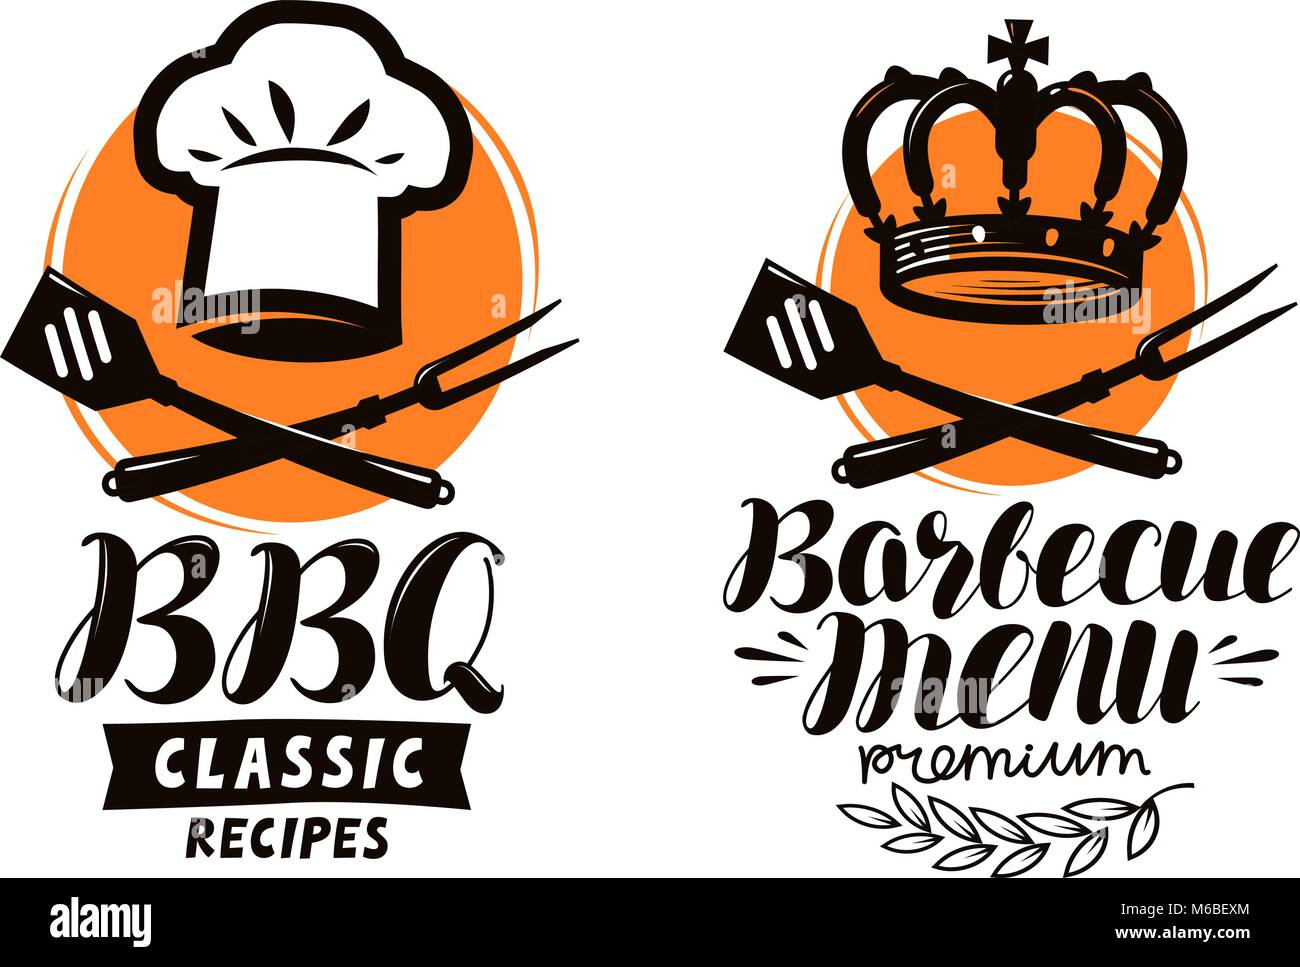 Bbq barbecue logo or label element for restaurant menu design bbq barbecue logo or label element for restaurant menu design food vector illustration forumfinder Gallery